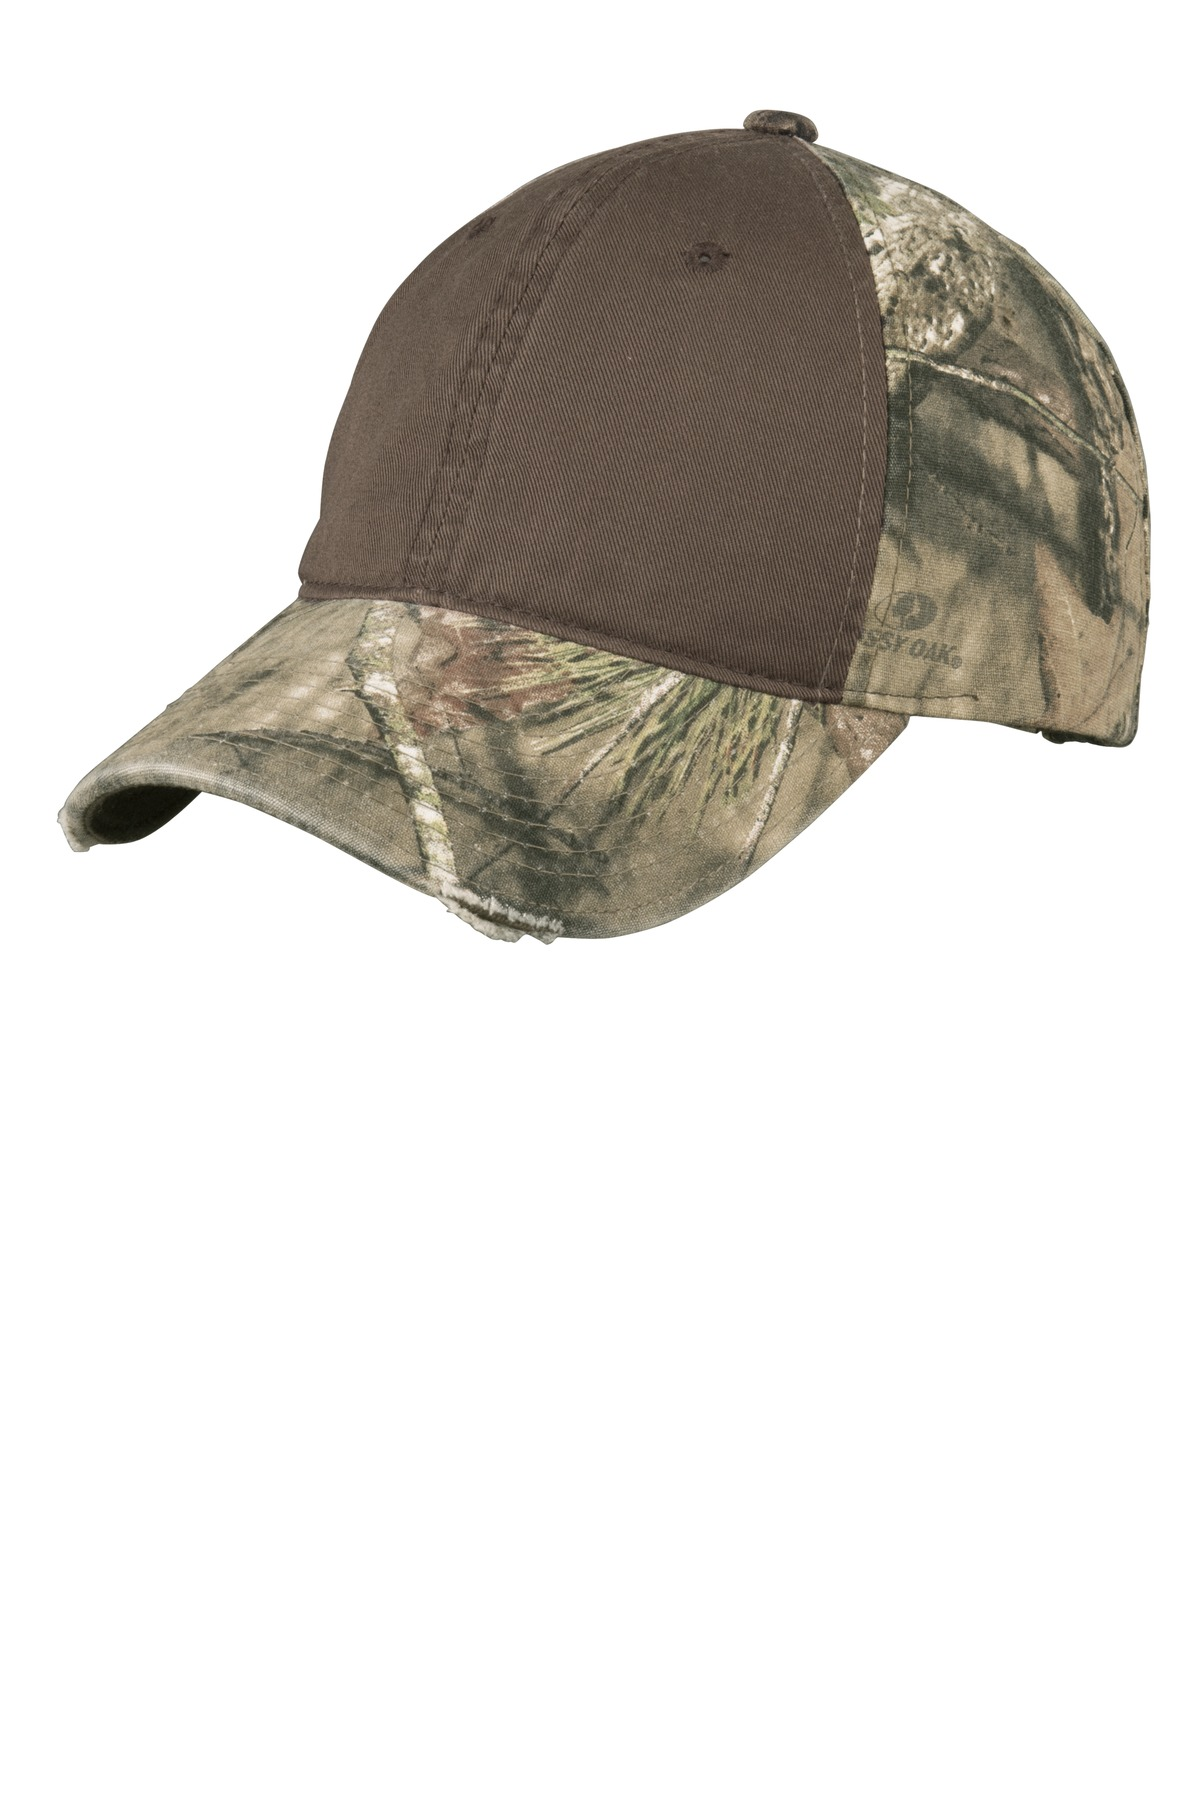 Port Authority ®  Camo Cap with Contrast Front Panel. C807 - Mossy Oak Break-Up Country/ Chocolate